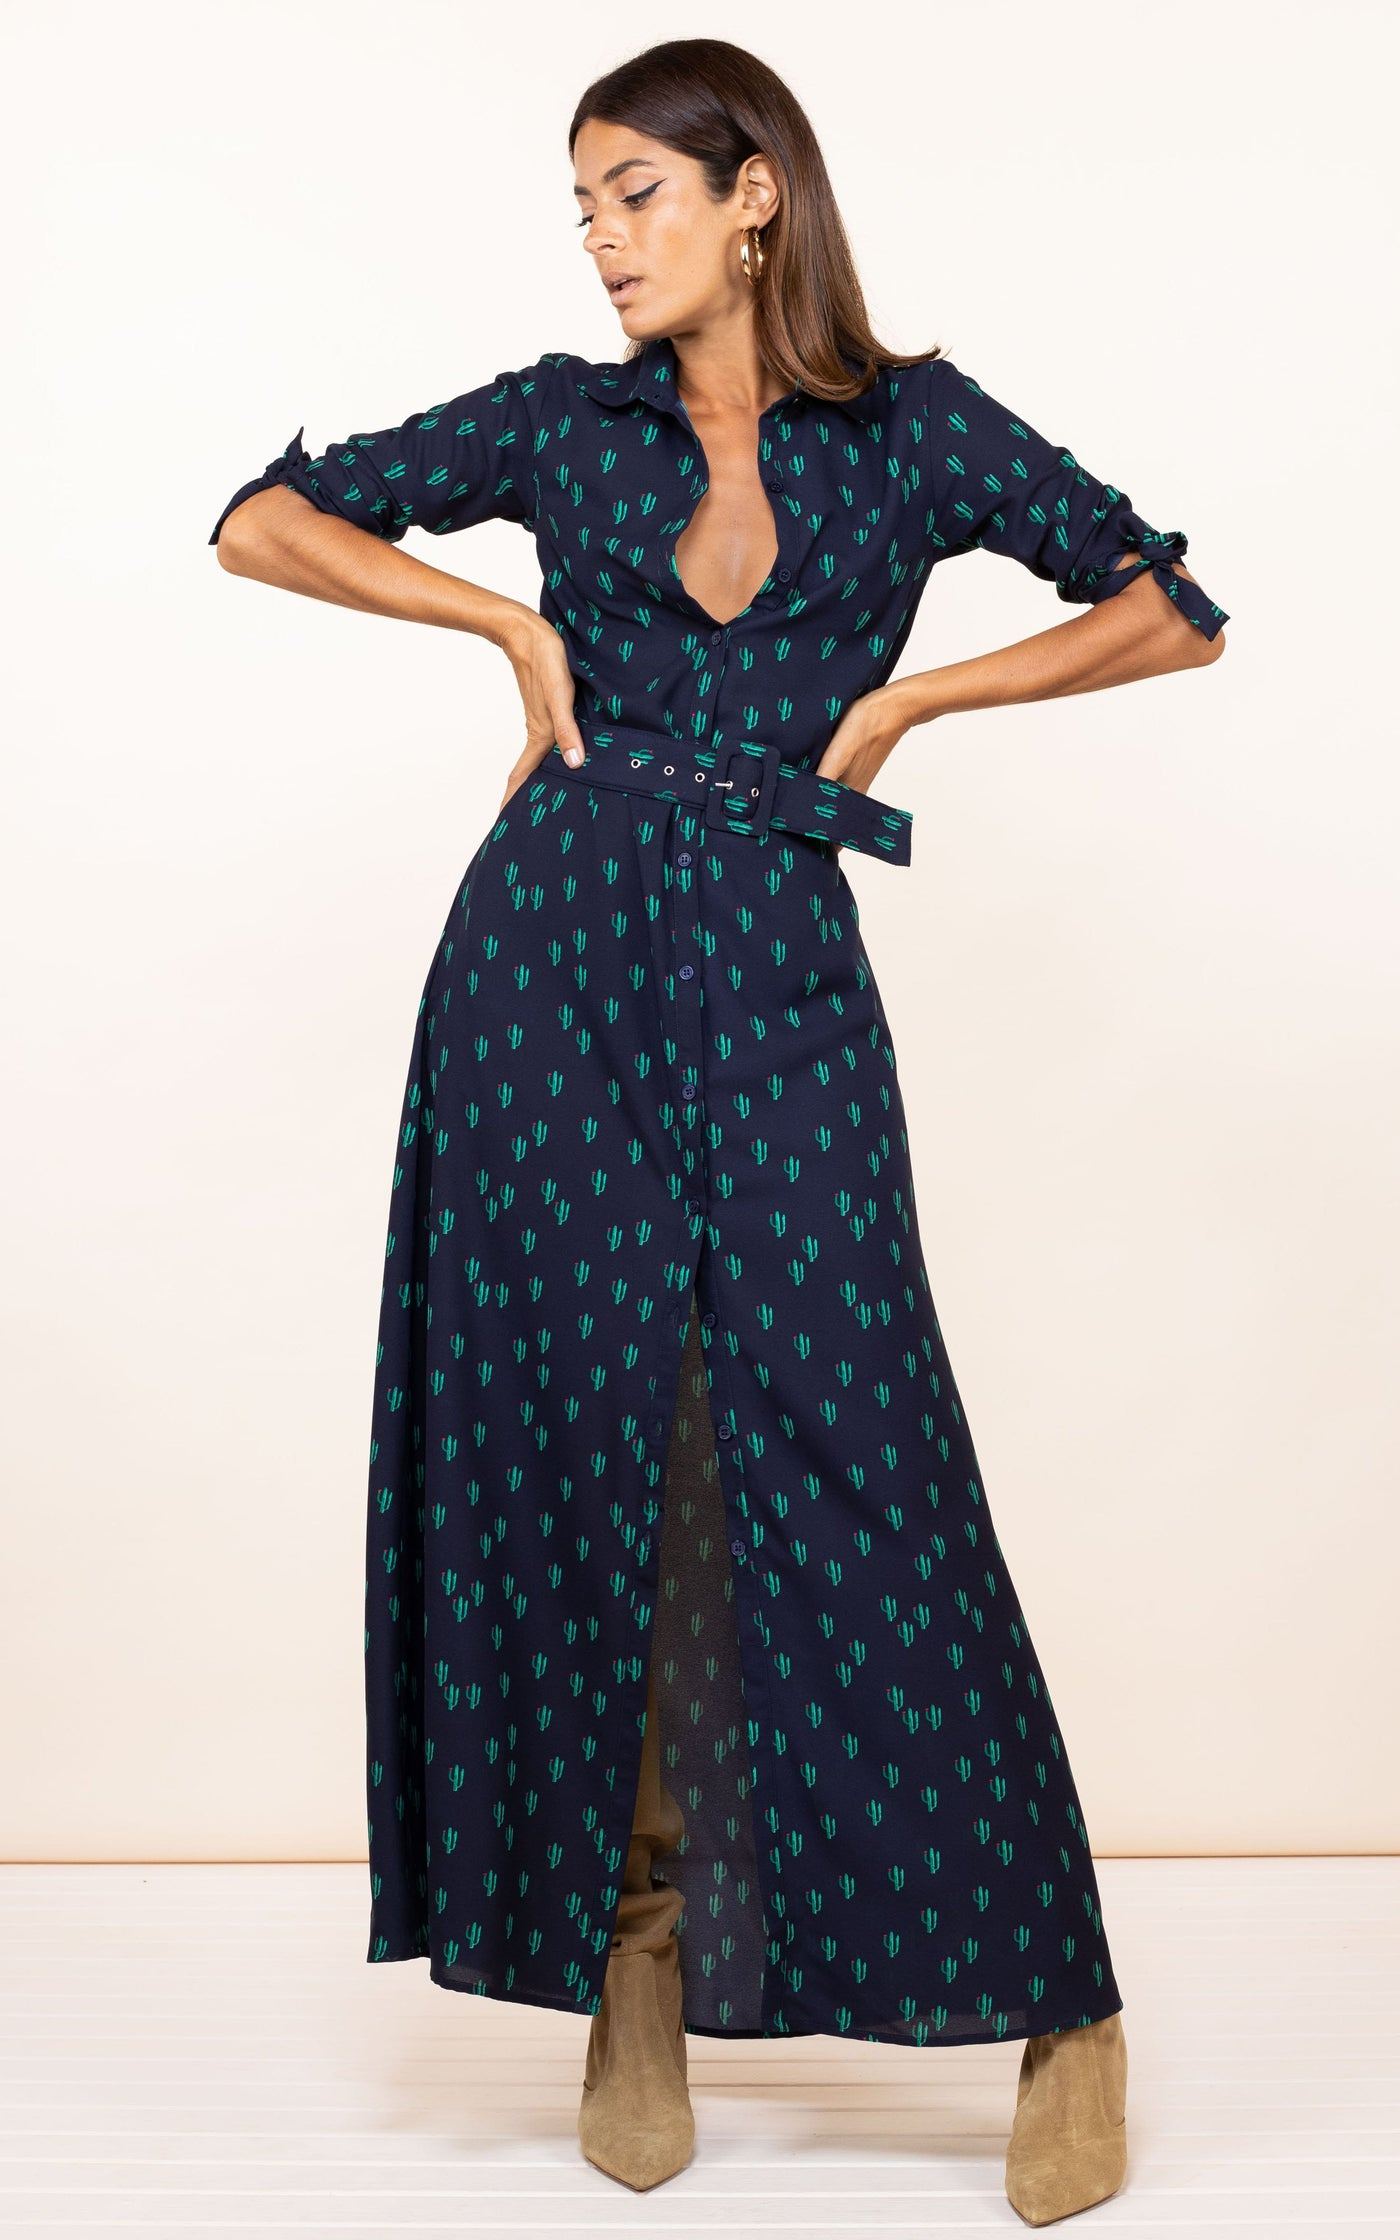 Dancing Leopard model faces forwards with hands on hips wearing Dove Dress in navy cactus print